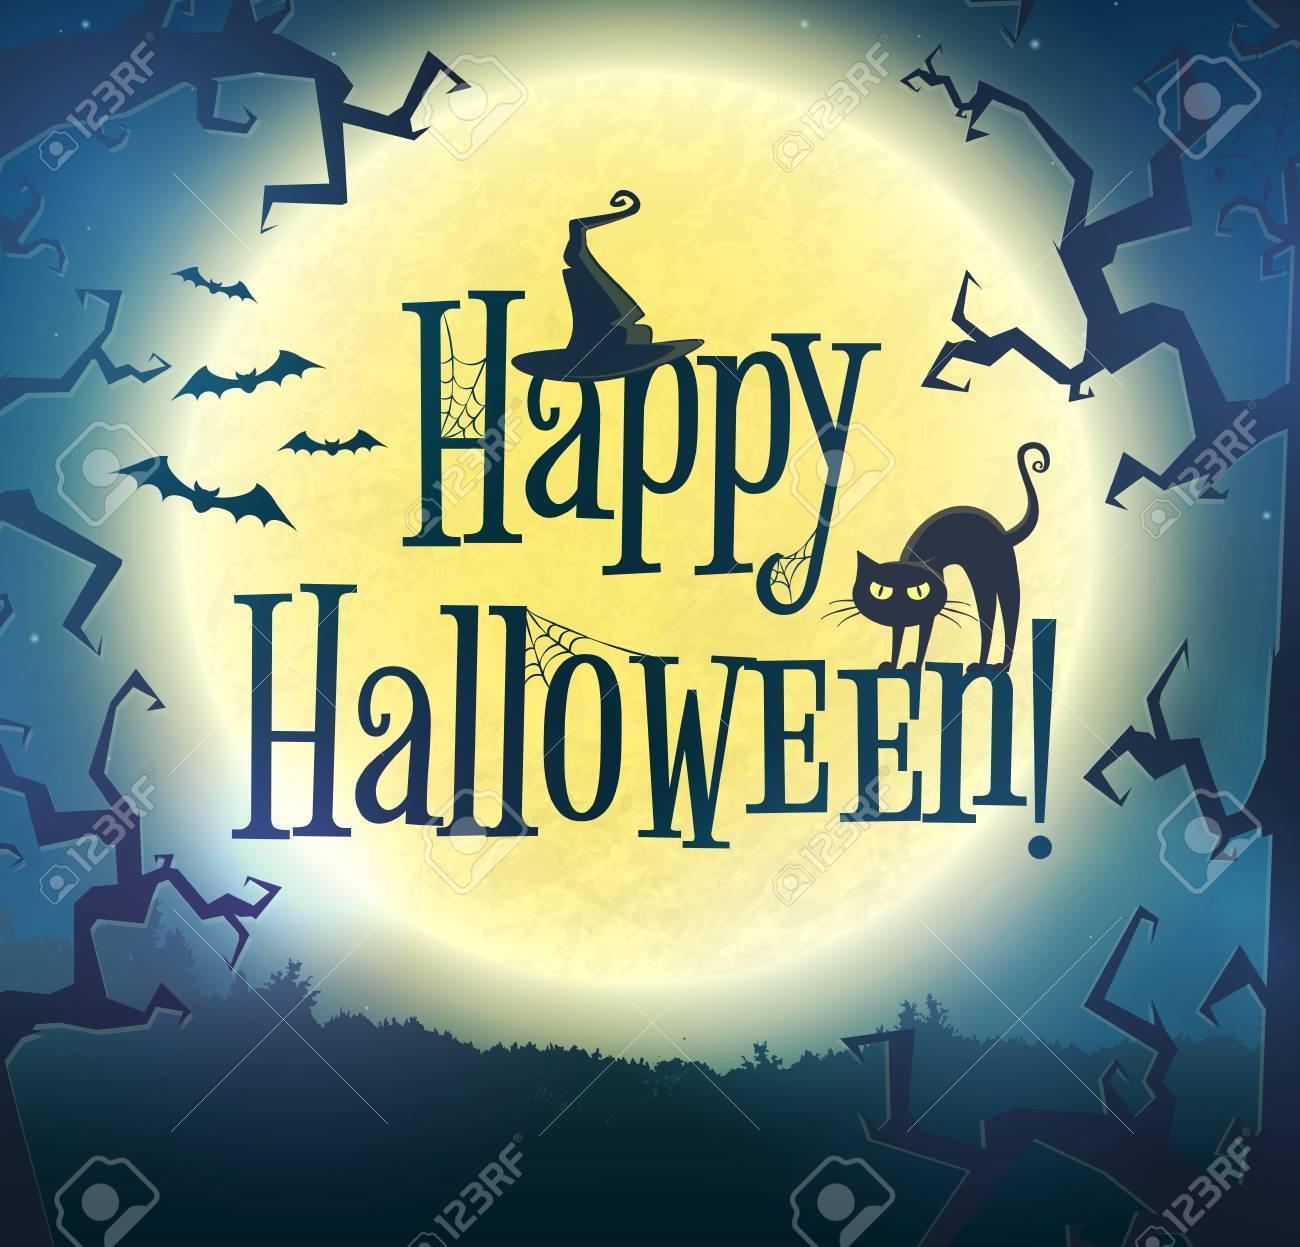 Happy Halloween! Vector Greeting Card. Spooky Night Background With Full  Moon, Scary Trees